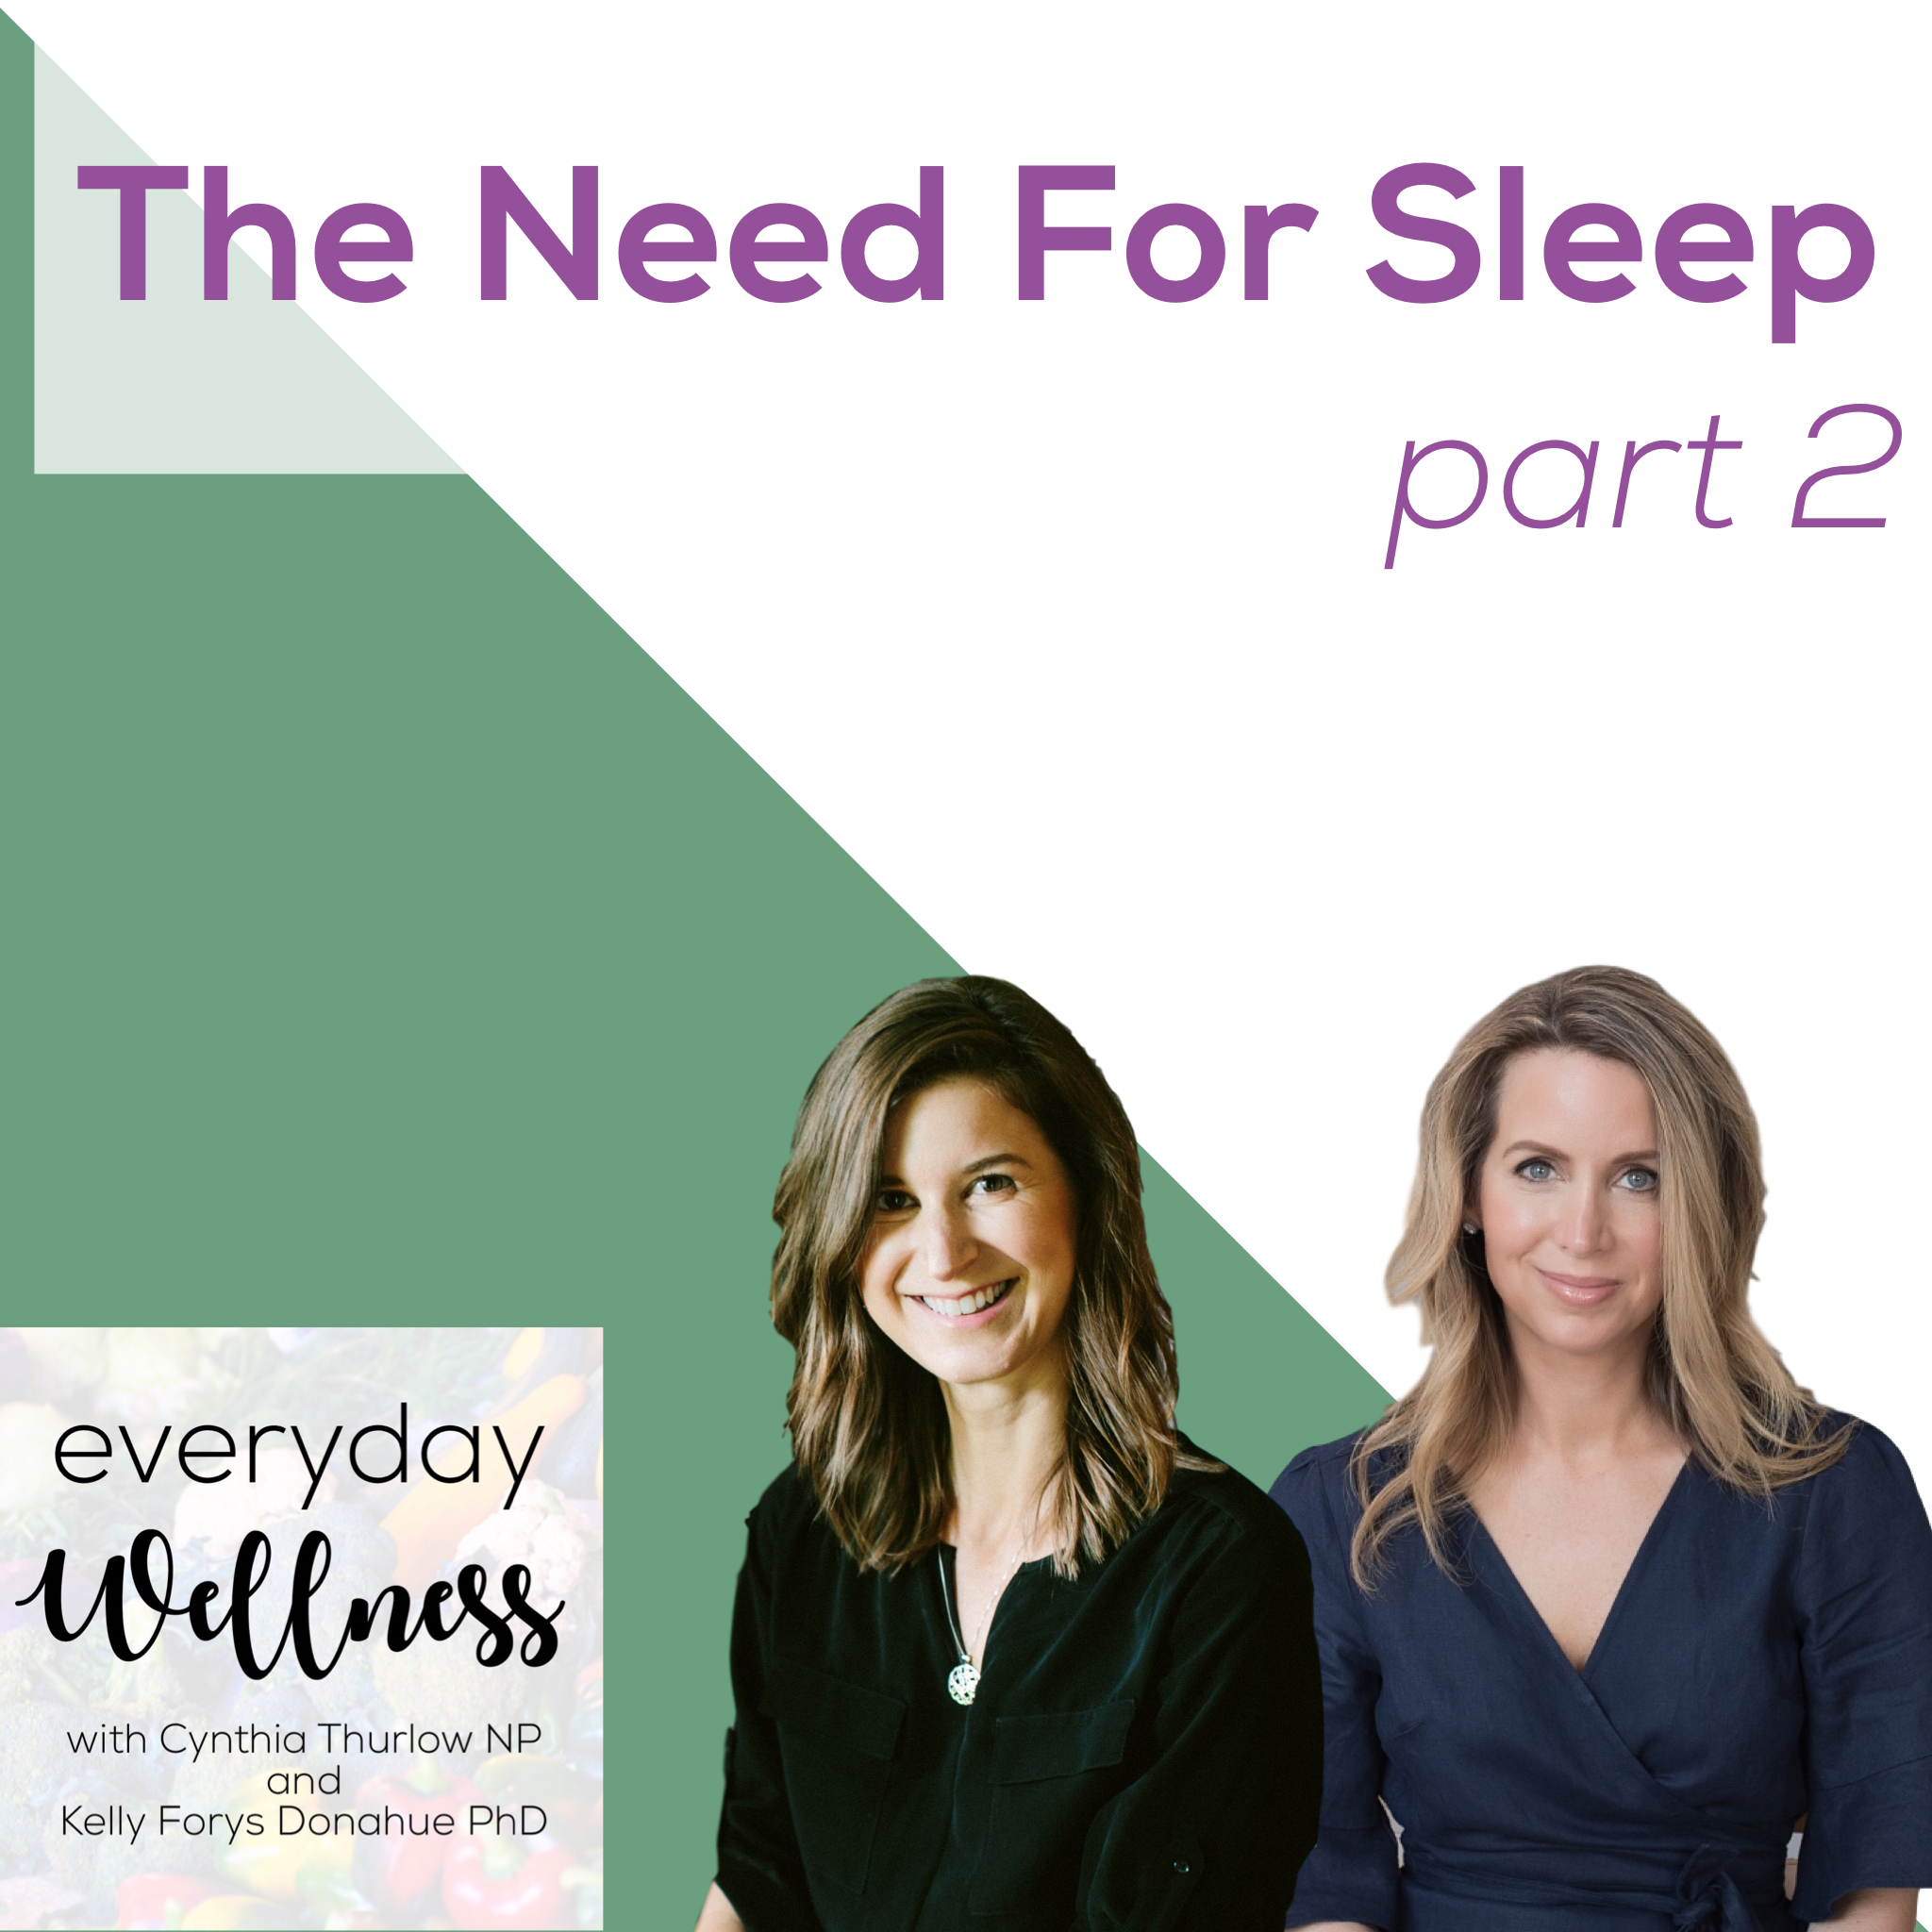 The Need for Sleep Part 2